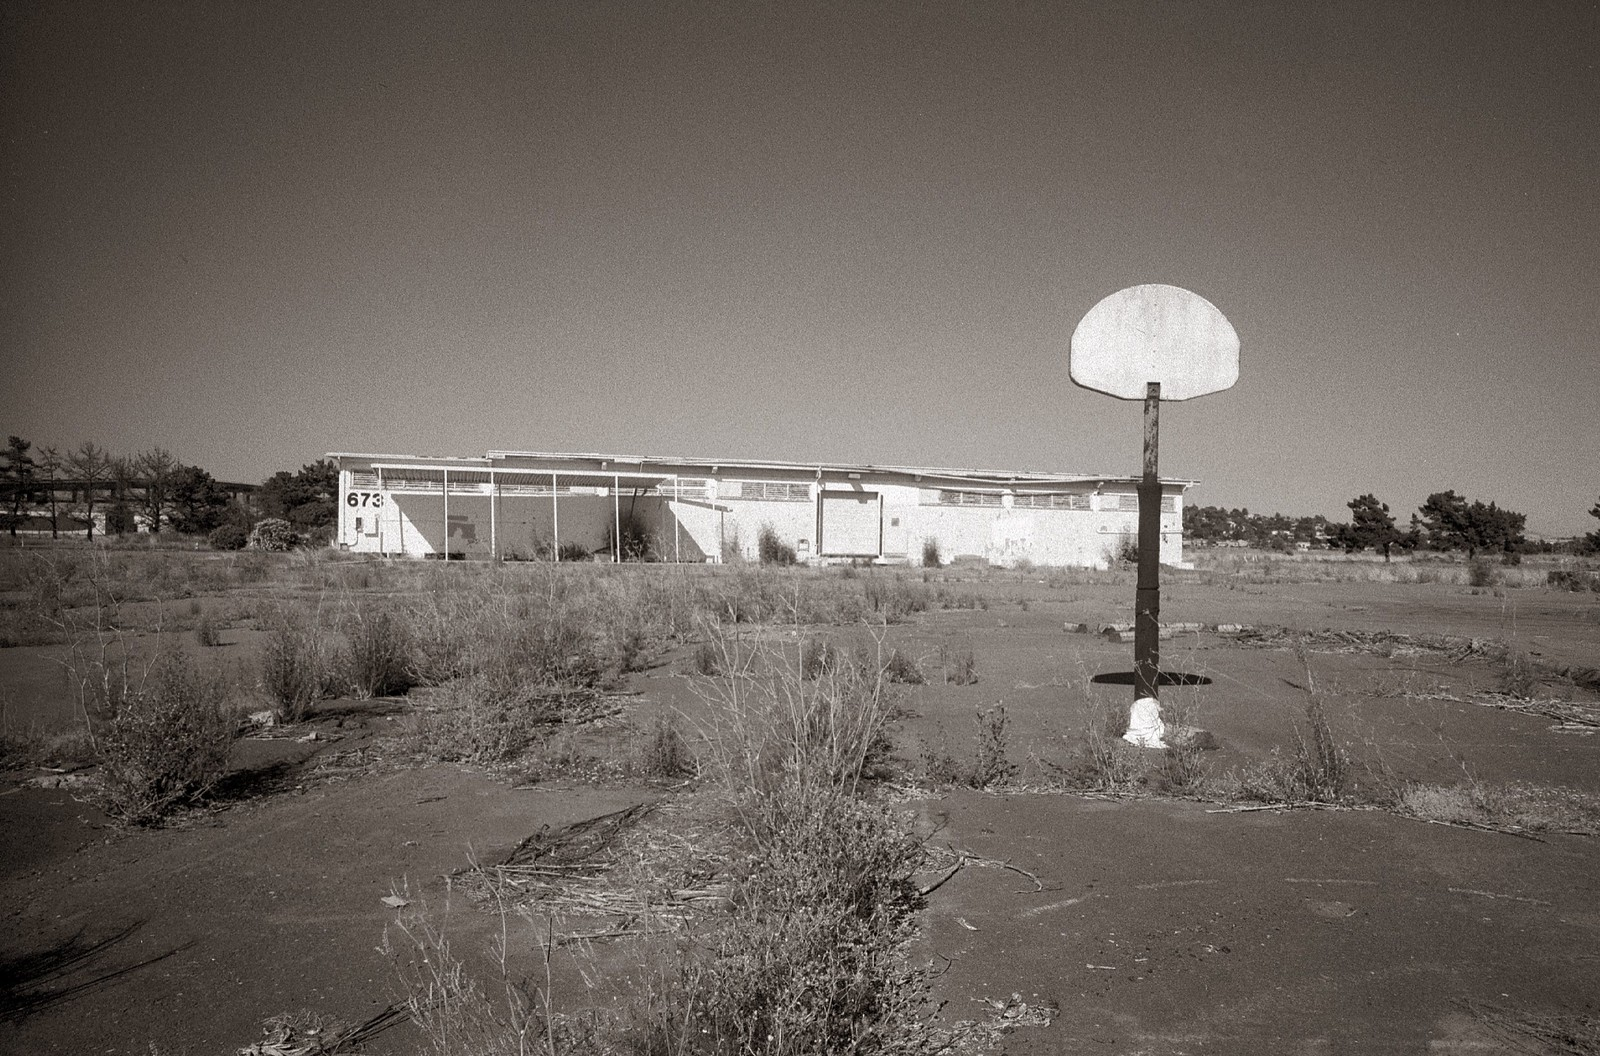 Basketball (Building 673) | by efo